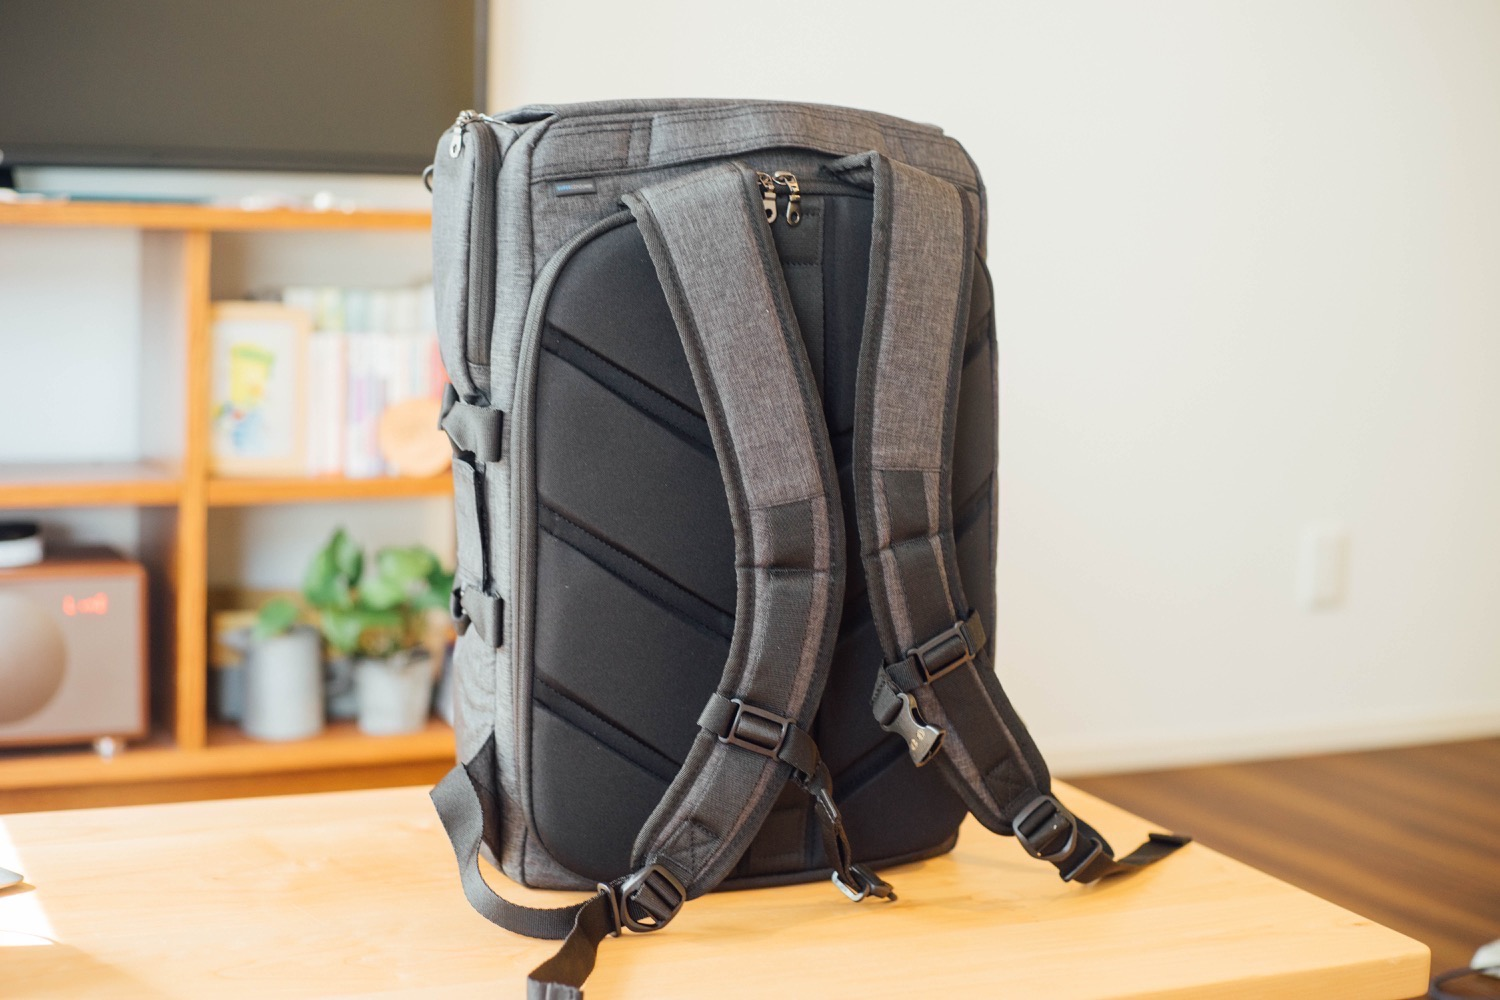 Kawaru business ruck sack 6